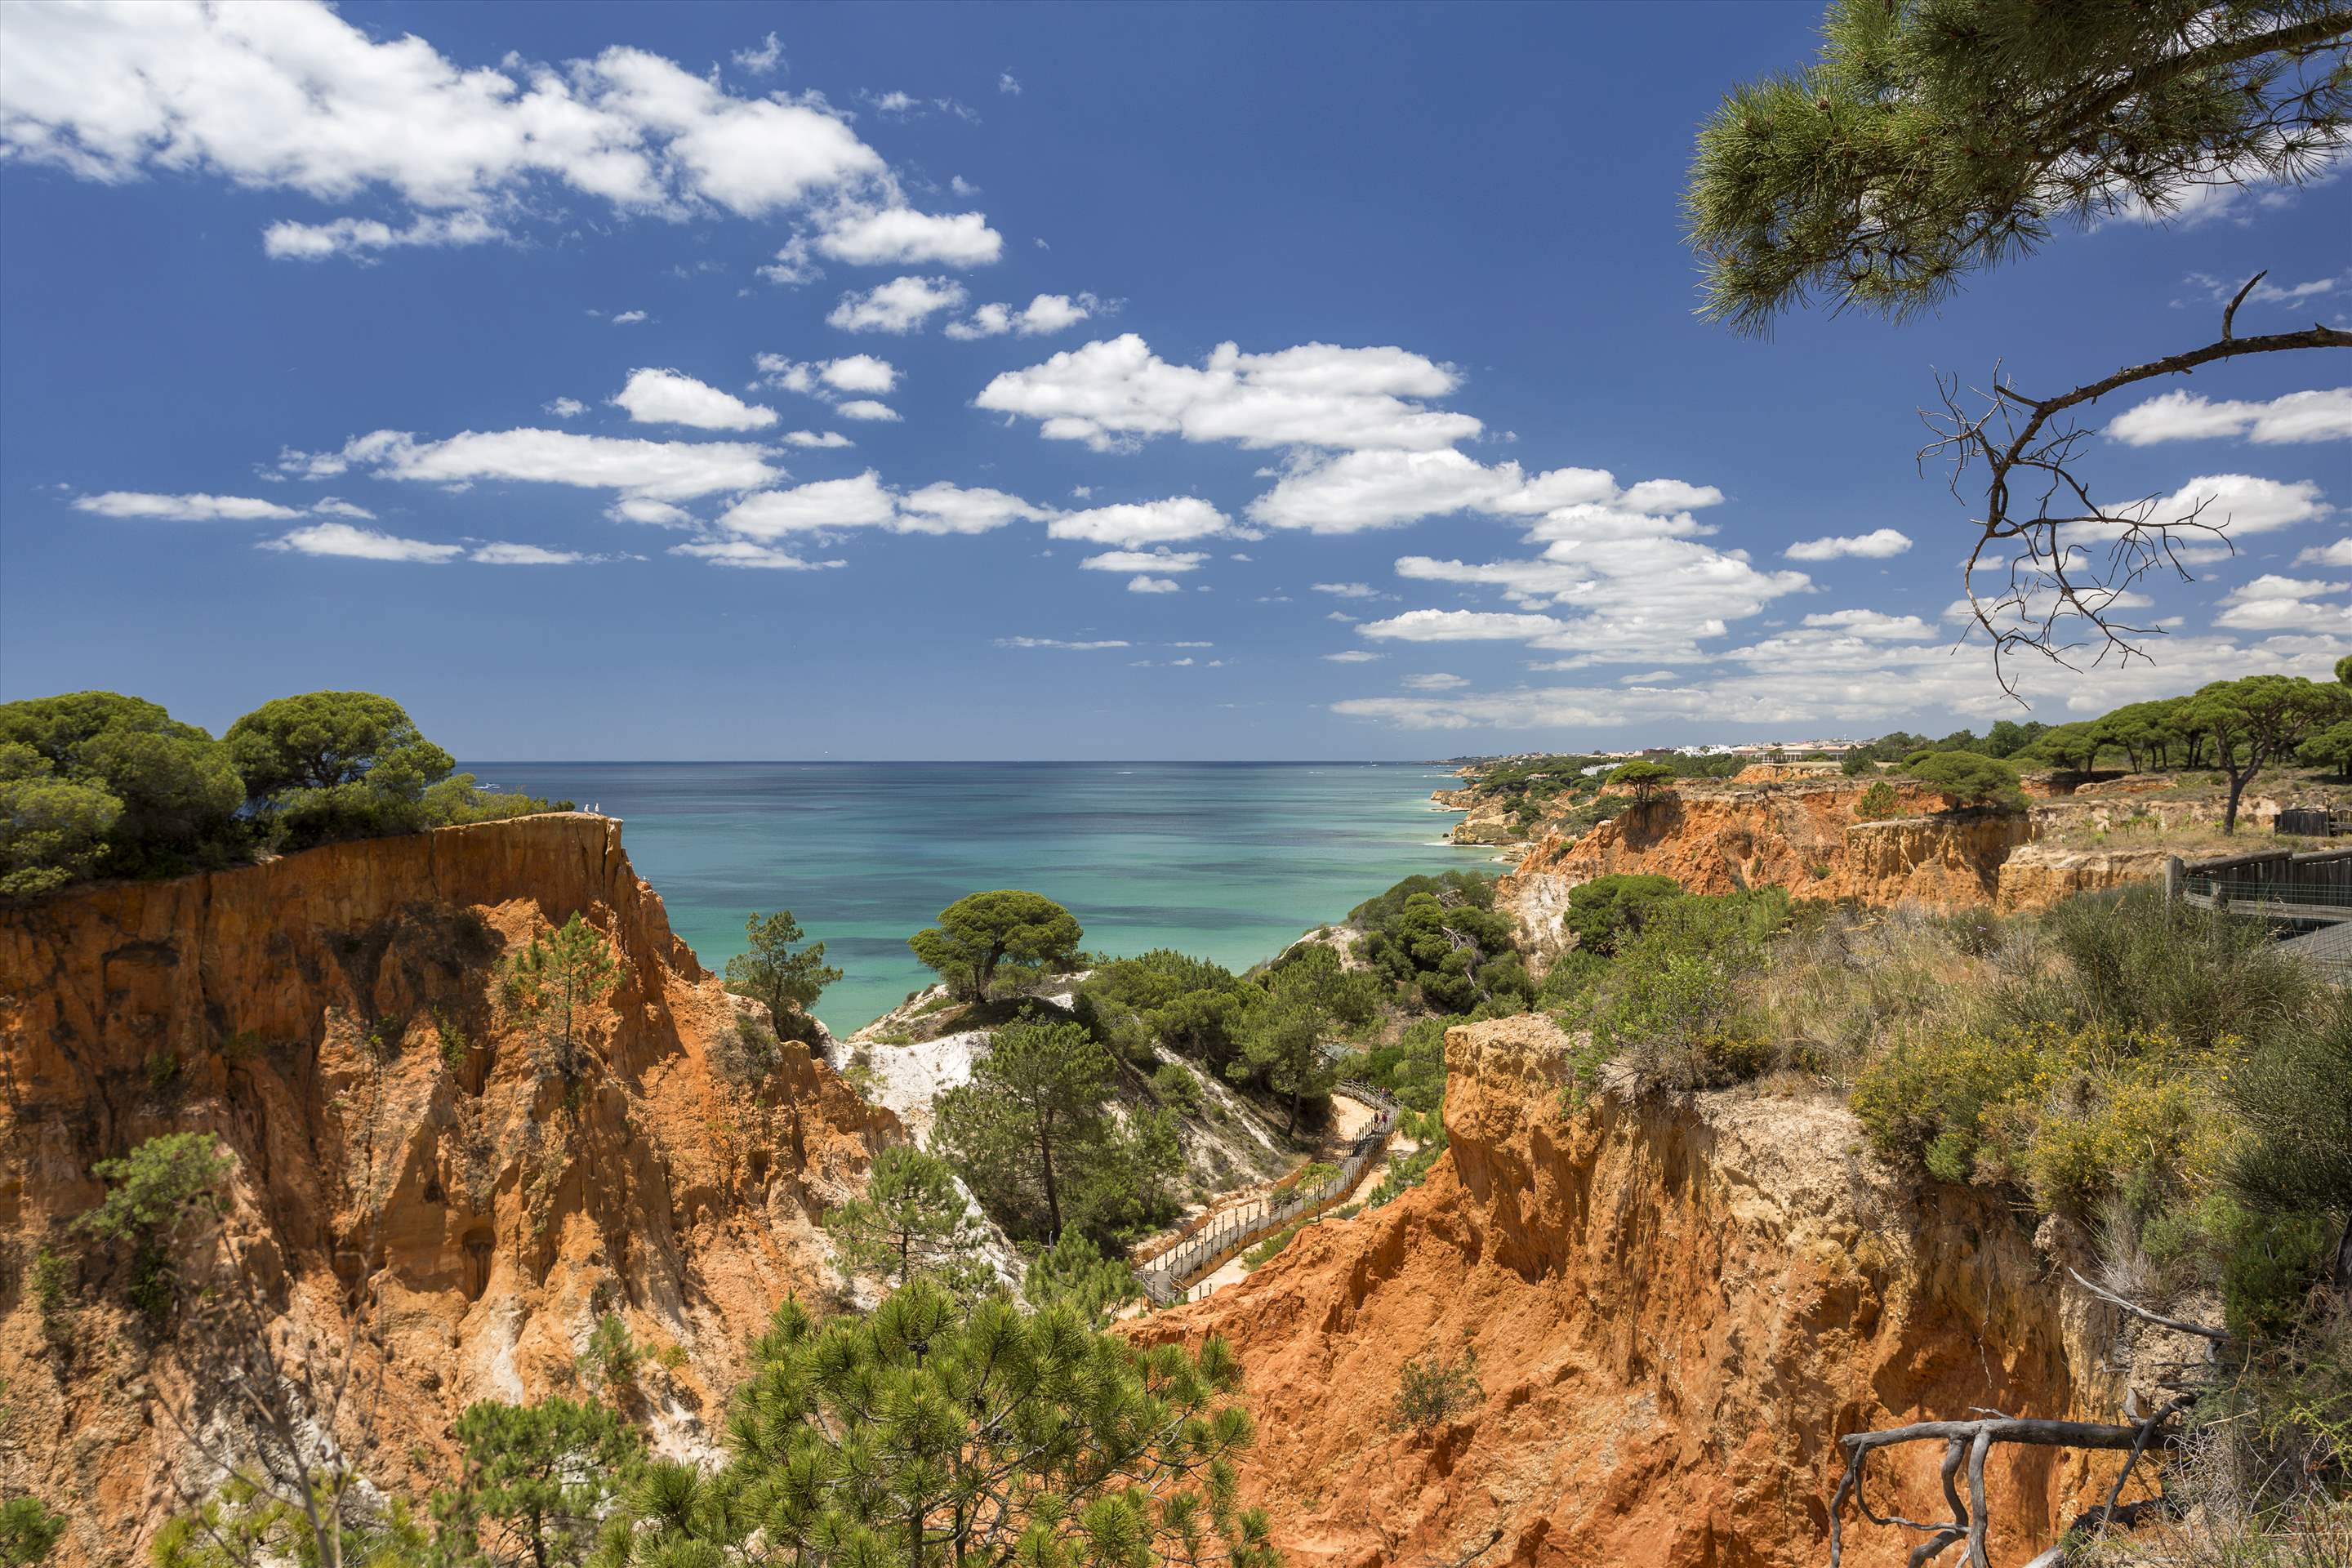 Pine Cliffs Suites, 3 Bedroom Penthouse, room only basis, 3 bedroom apartment in Pine Cliffs Resort, Algarve Photo #15